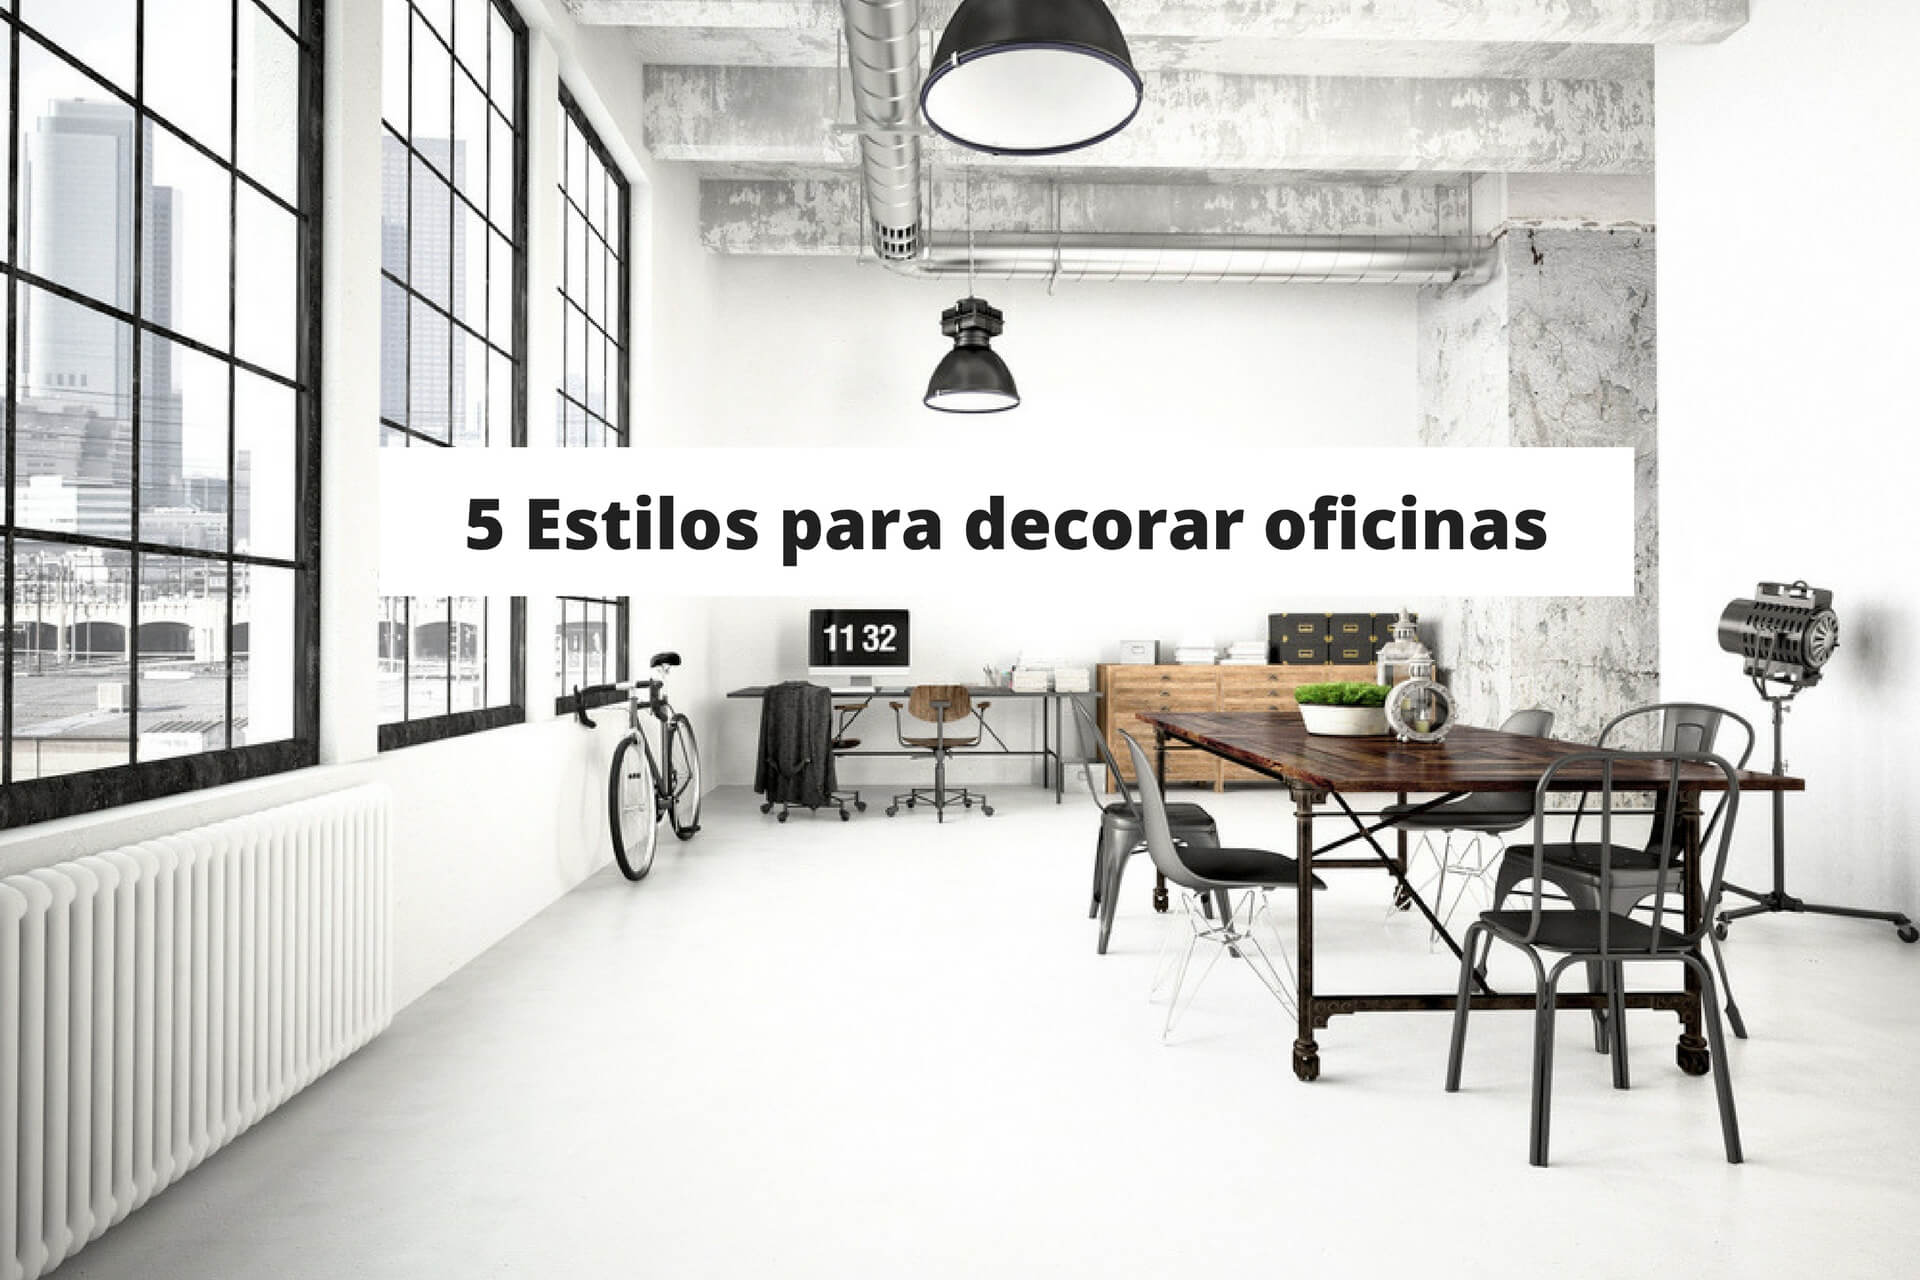 ideas_decorar_oficinas - estilos para decorar oficinas